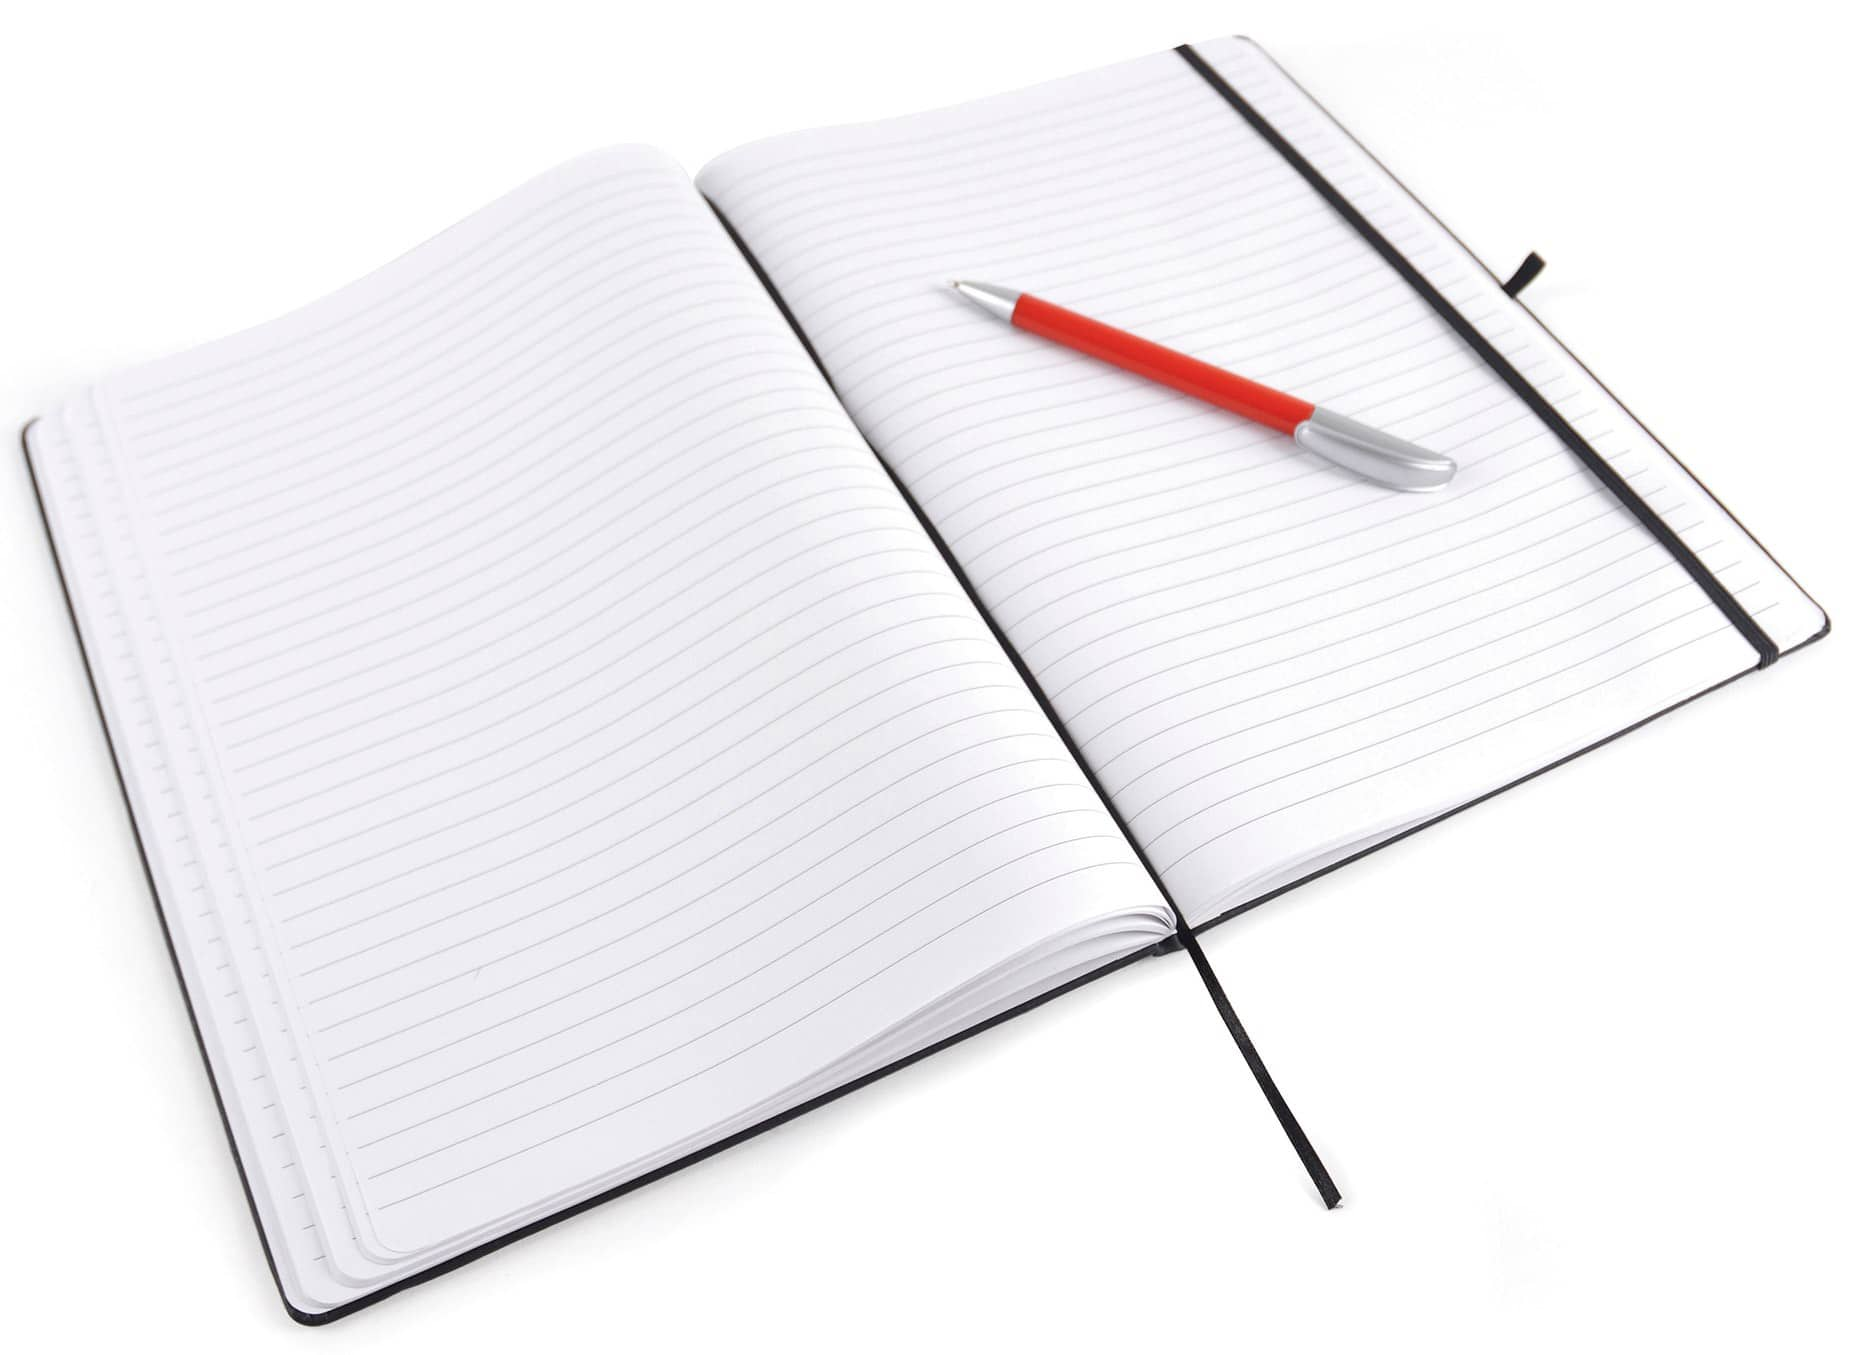 Interior of Mole A4 Promotional Notepads from The Notebook Warehouse, available with 180 Pages of Lined Paper